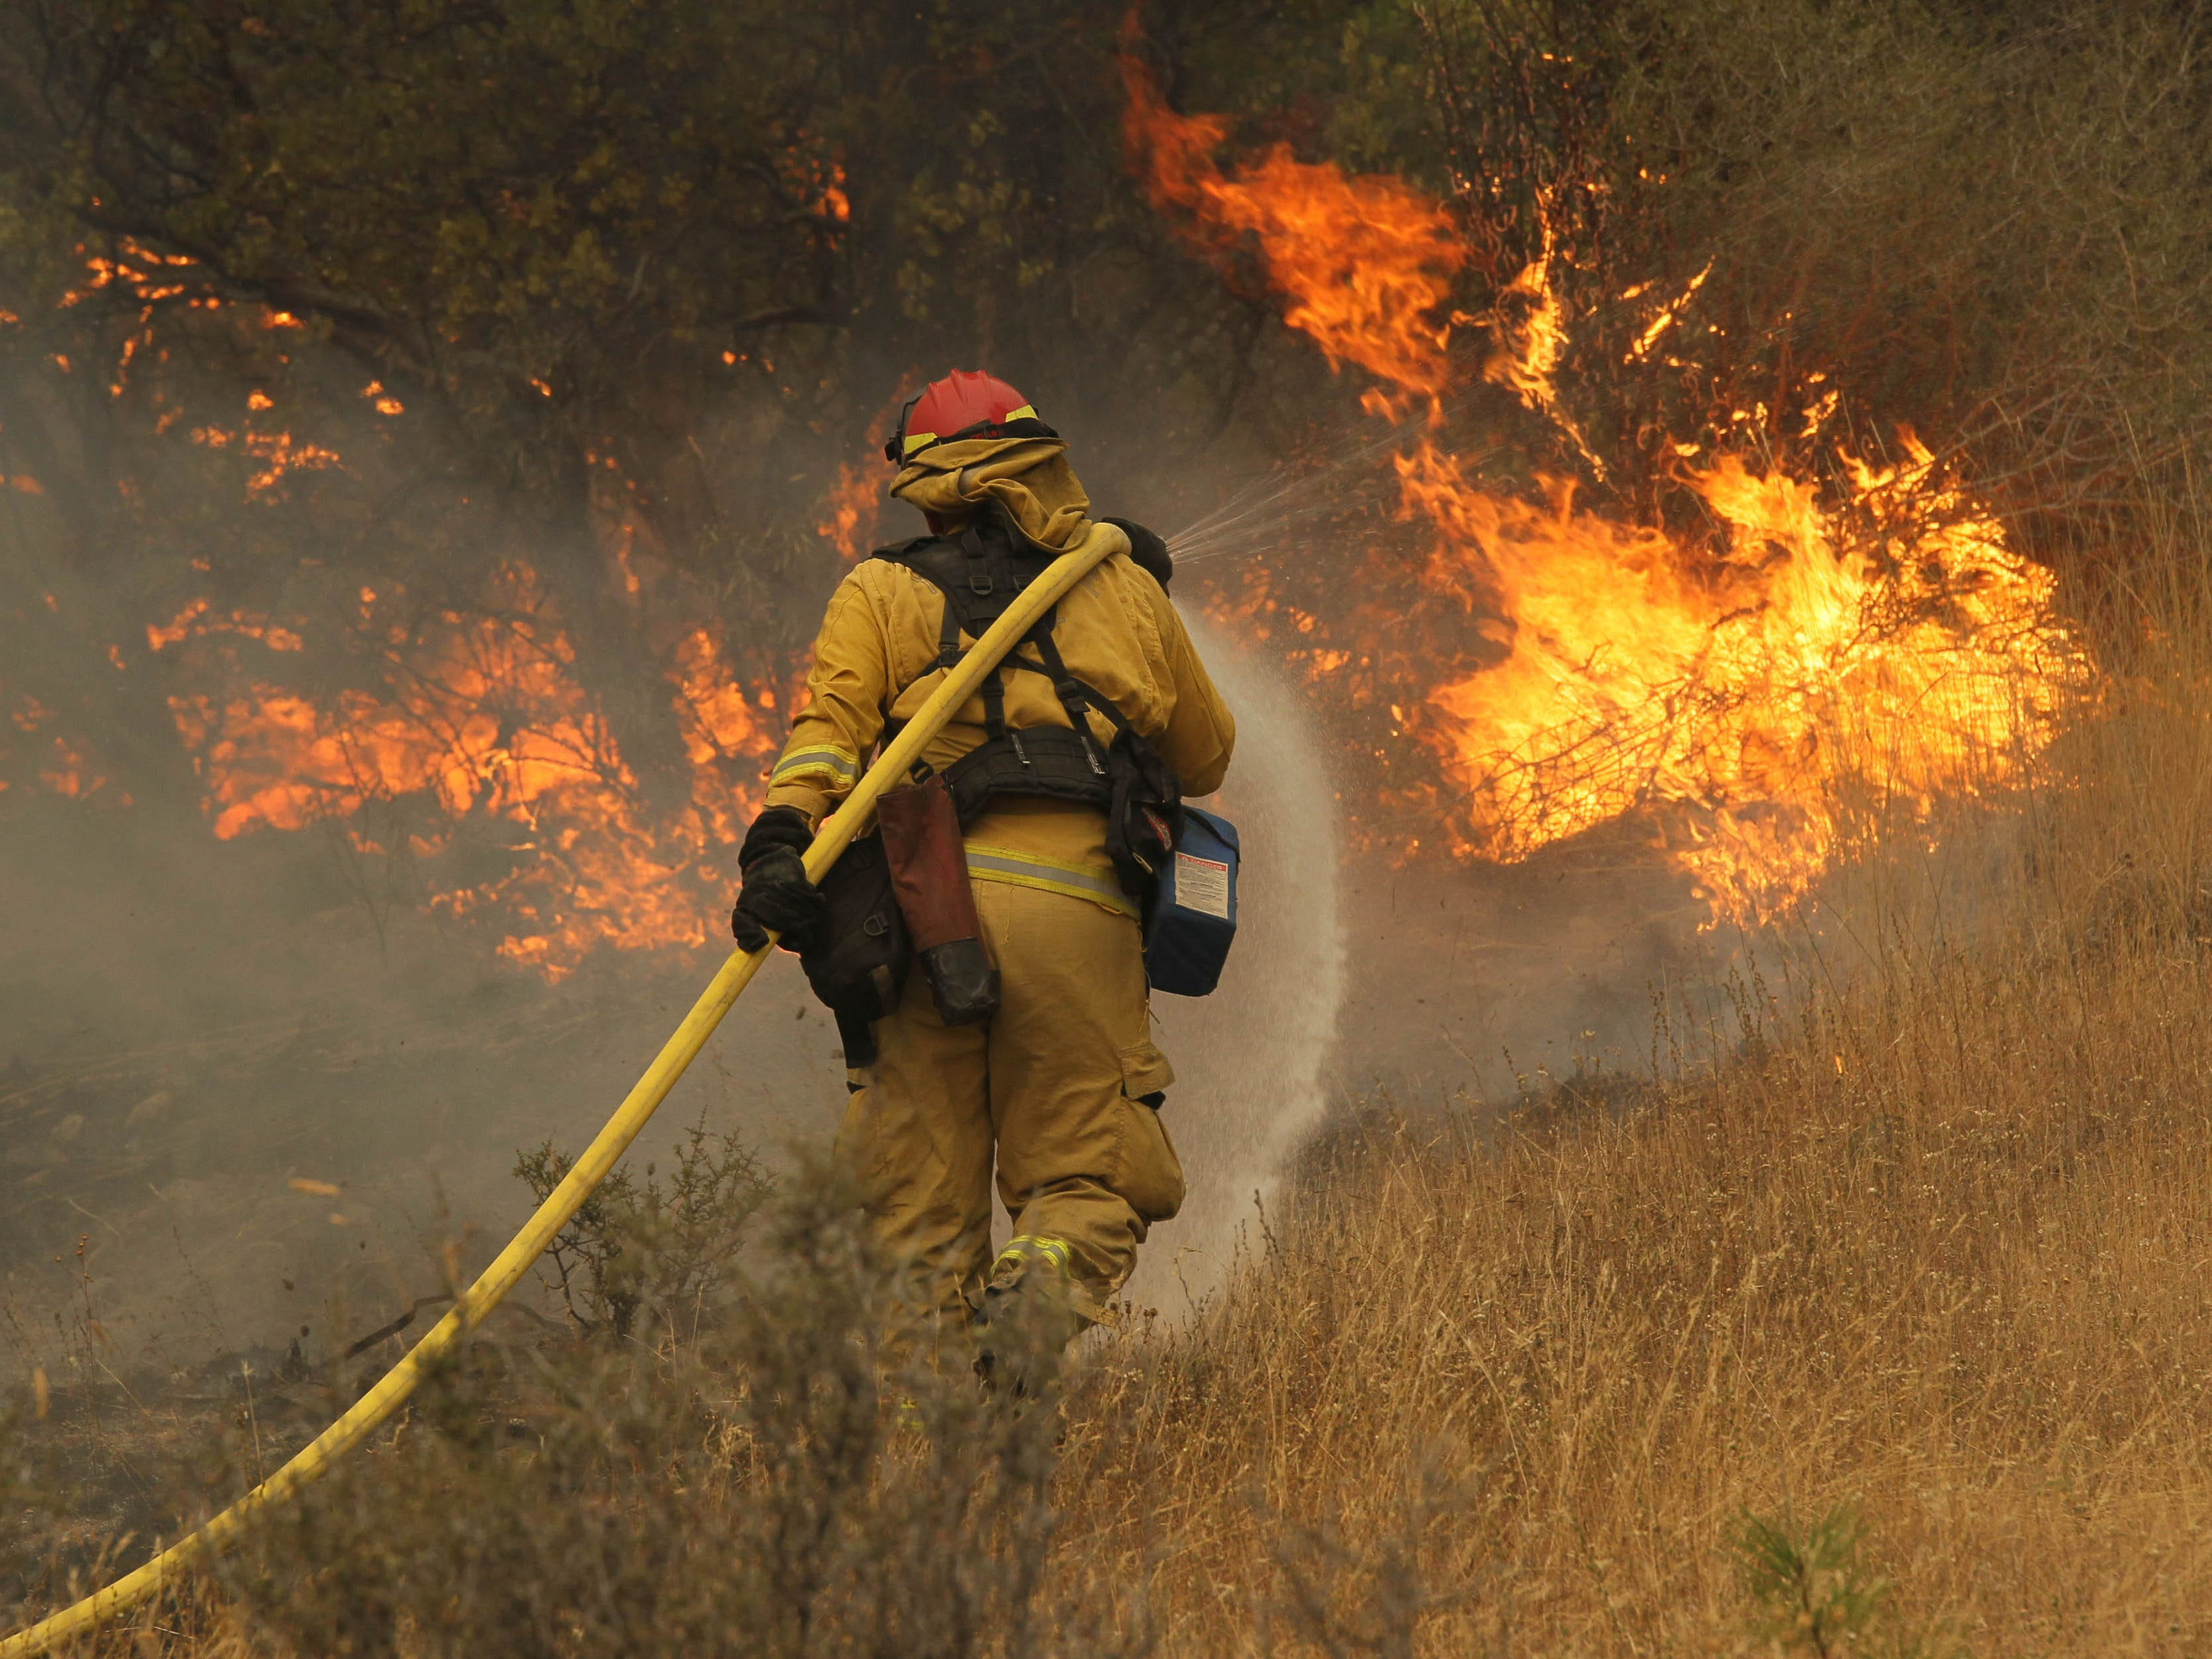 Fire Capt. Norm Alexander of Yocha Dehe Fire in Yolo County puts some water on the flames of the Delta Fire as it burns by the I-5 Earl Sholes Memorial Bridge on Friday, Sept. 7, 2018. (Hung T. Vu/Special to the Record Searchlight)